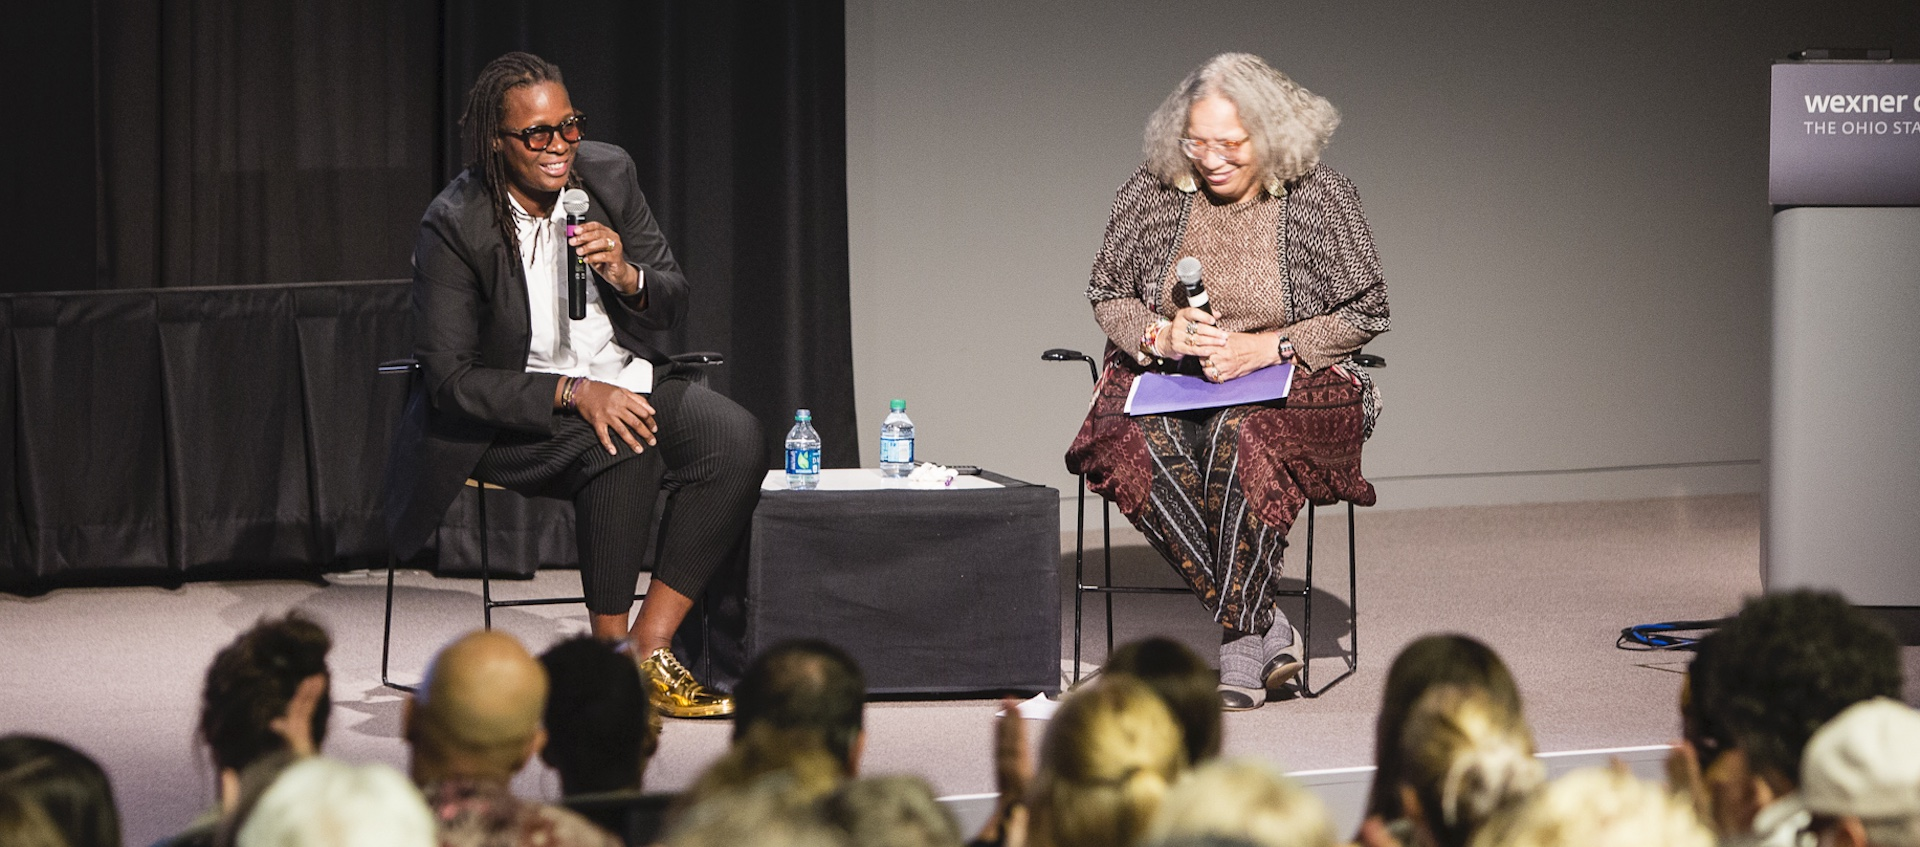 Mickalene Thomas talks with Beverly Guy-Sheftall at the Wexner Center for the Arts